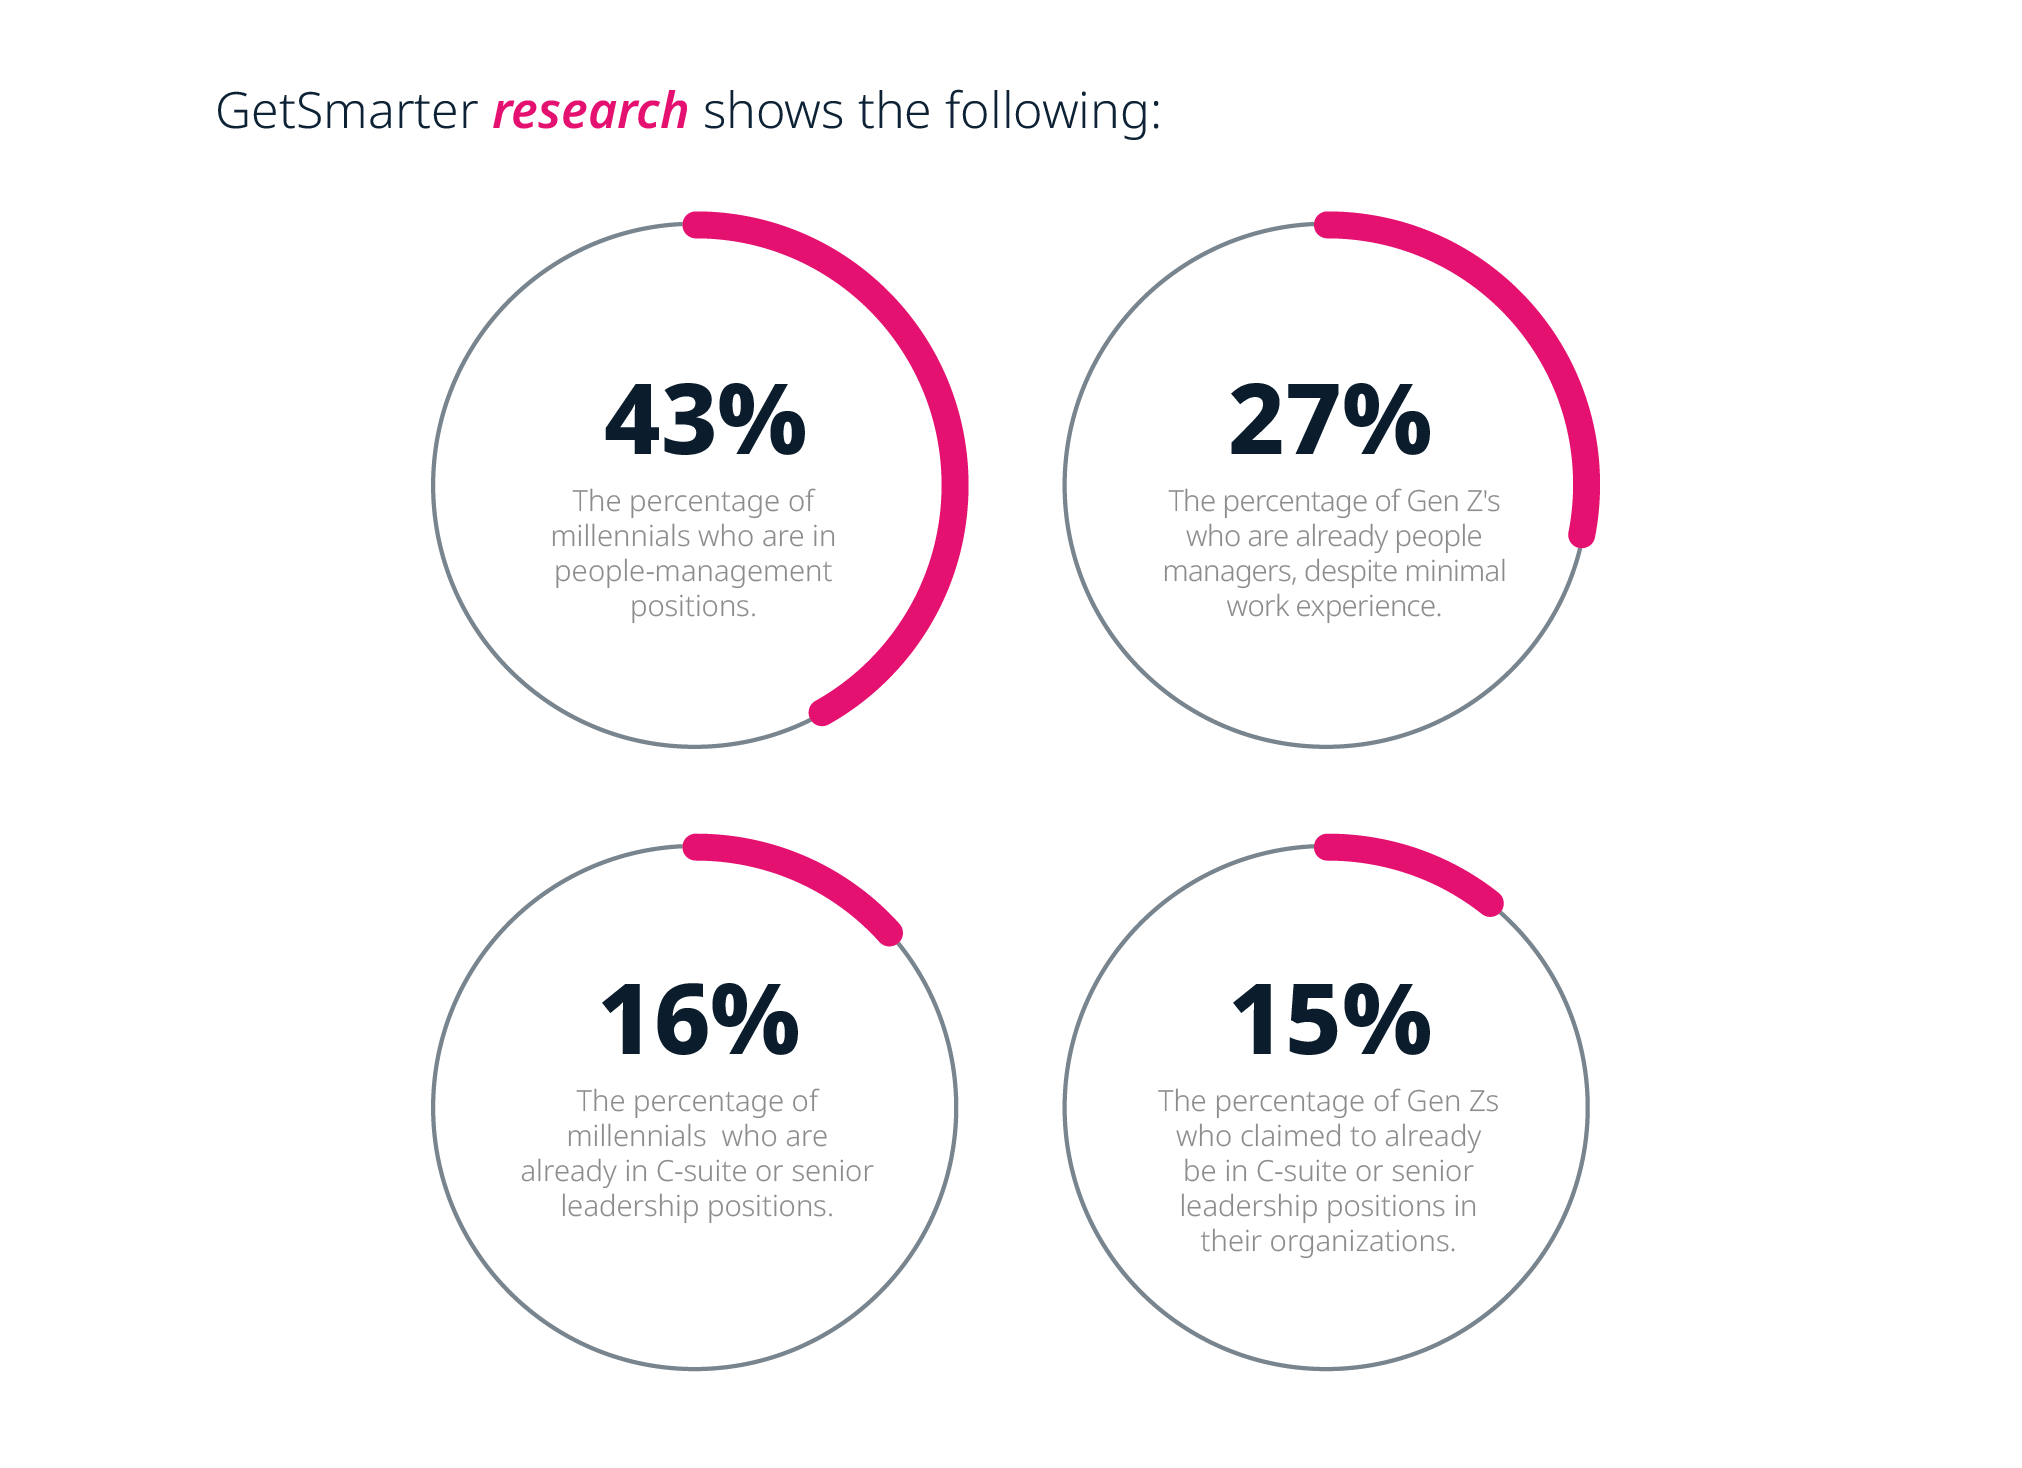 GetSmarter research: Younger generations are moving into management